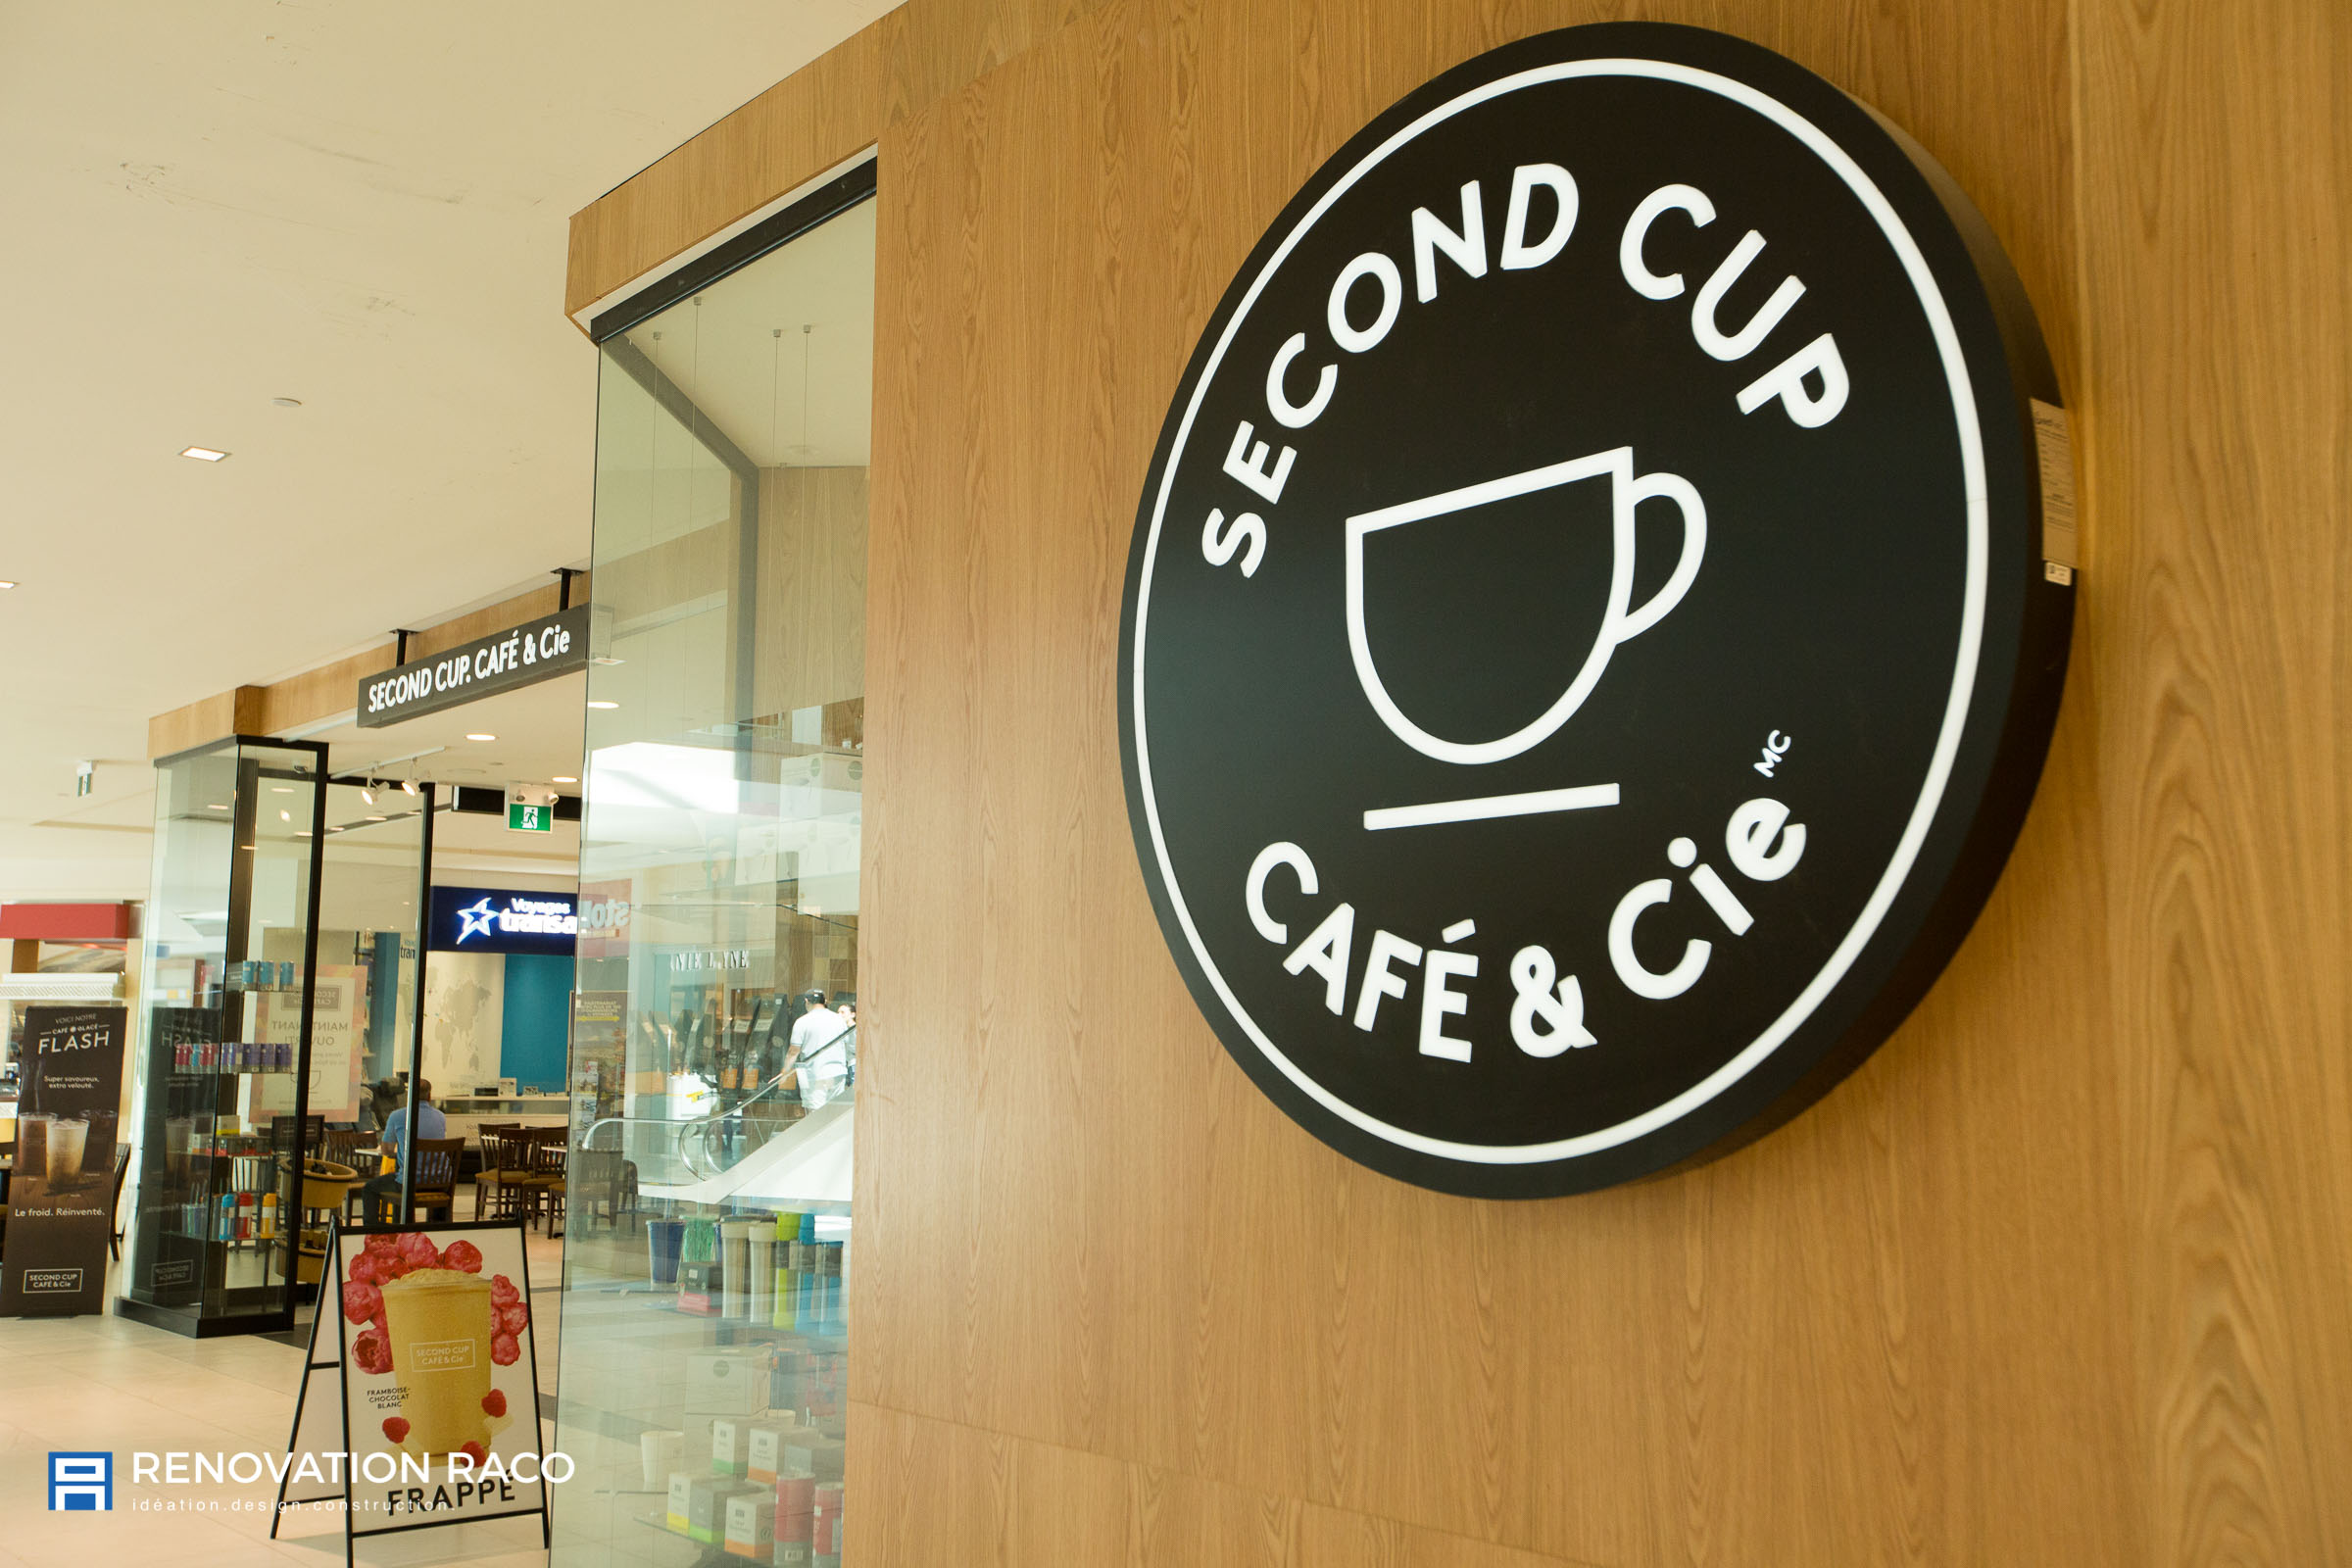 Renovation-Raco-Montreal-Second Cup-02.jpg